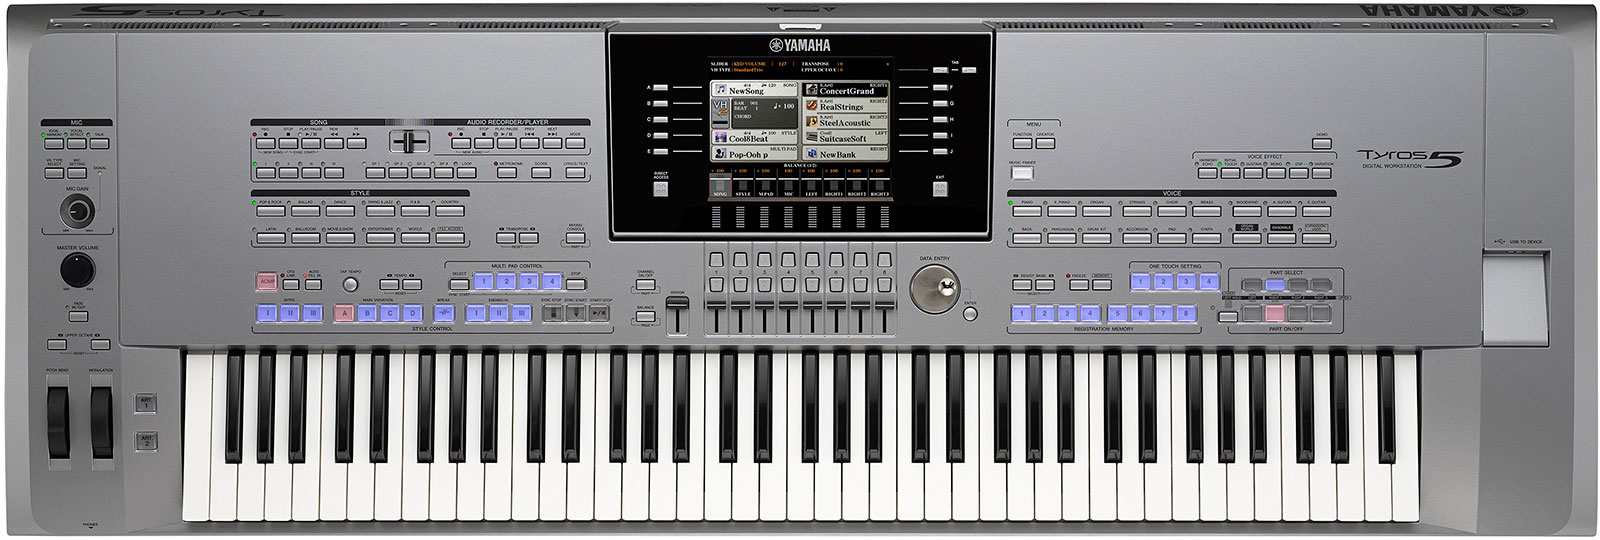 Yamaha Tyros 5 (76Key & 61Key) Review & Best Price | Digital